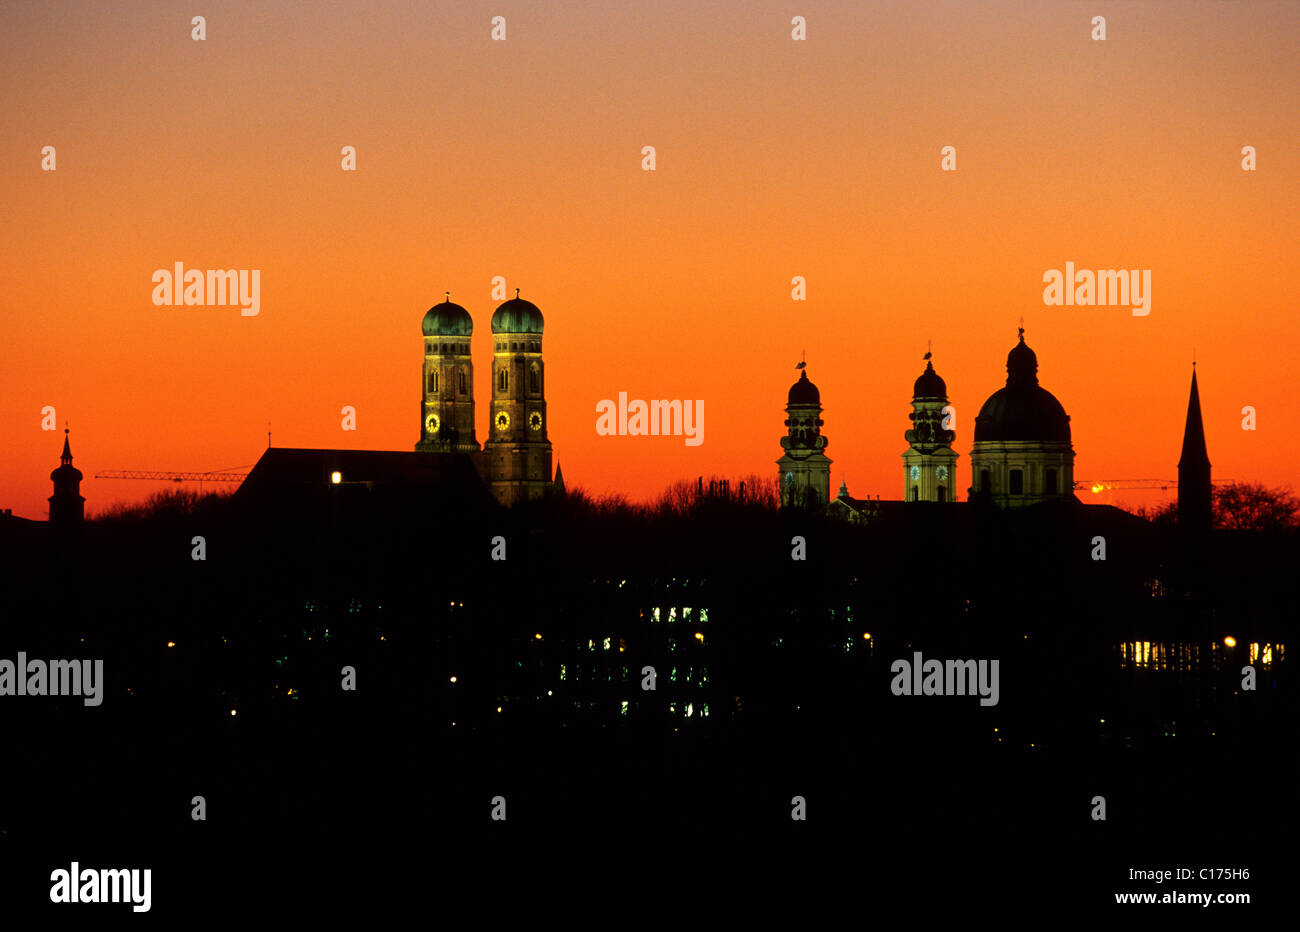 Skyline of Munich, Frauenkirche Church and Theatinerkirche Church, Munich, Bavaria ***restriction: Usage: advertisement - Stock Image